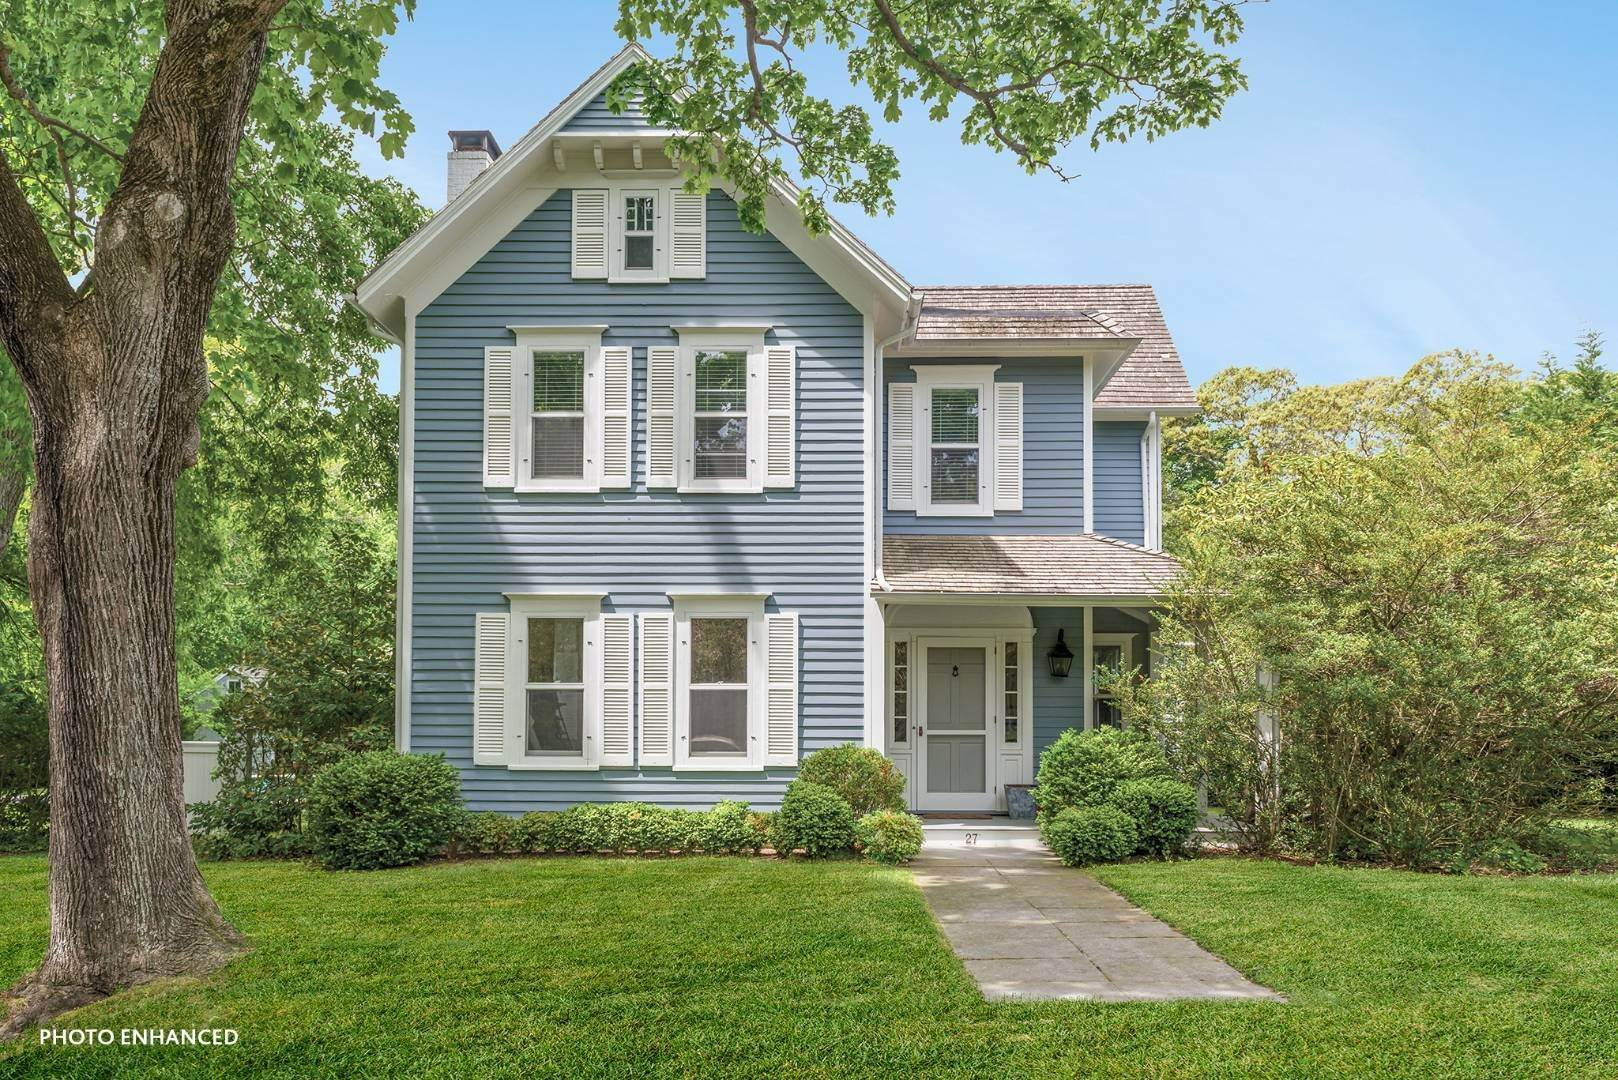 Single Family Home for Sale at Historic Sag Harbor Charm On Rare Half Acre 27 Columbia Street, Sag Harbor, NY 11963